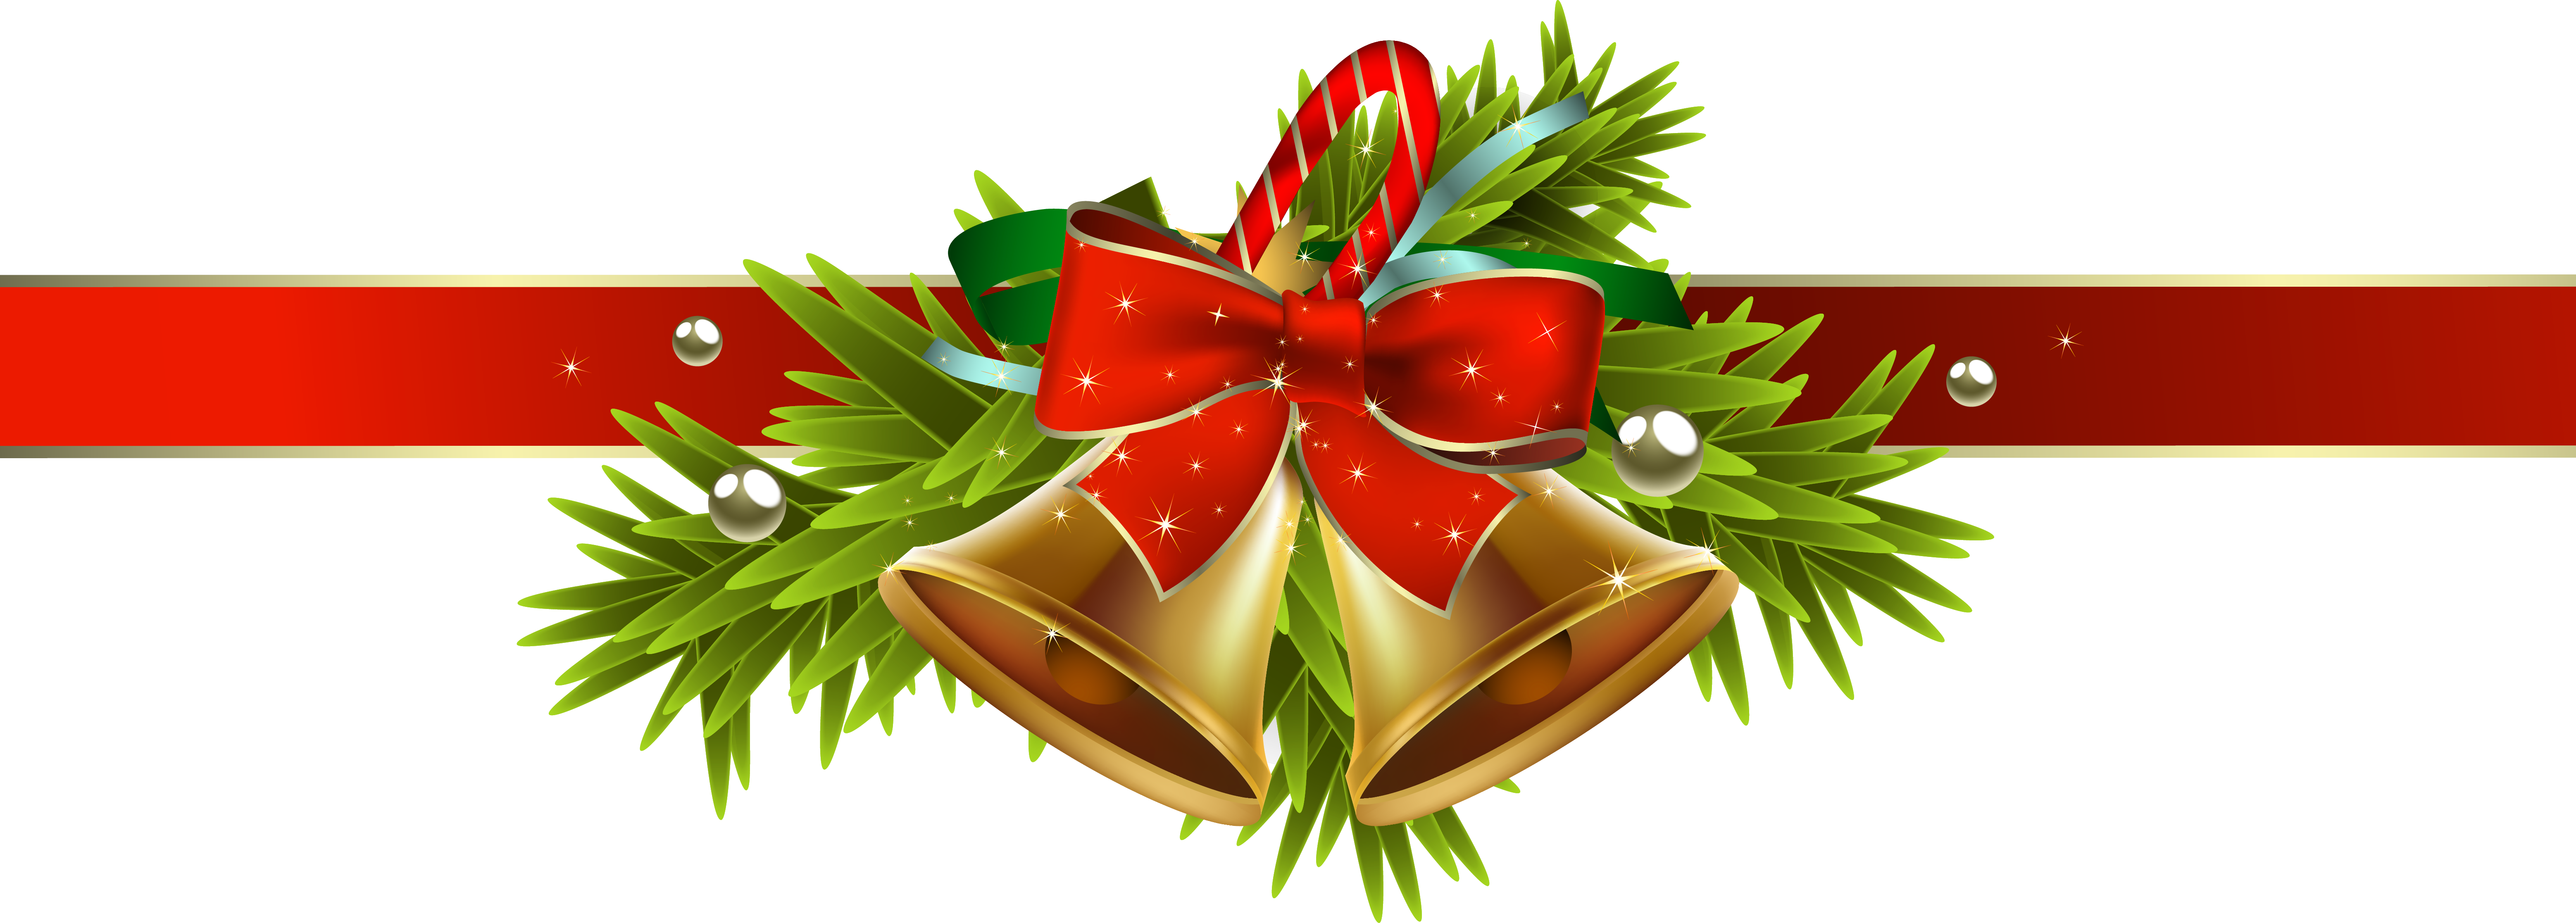 Christmas Bell Png Image 35325